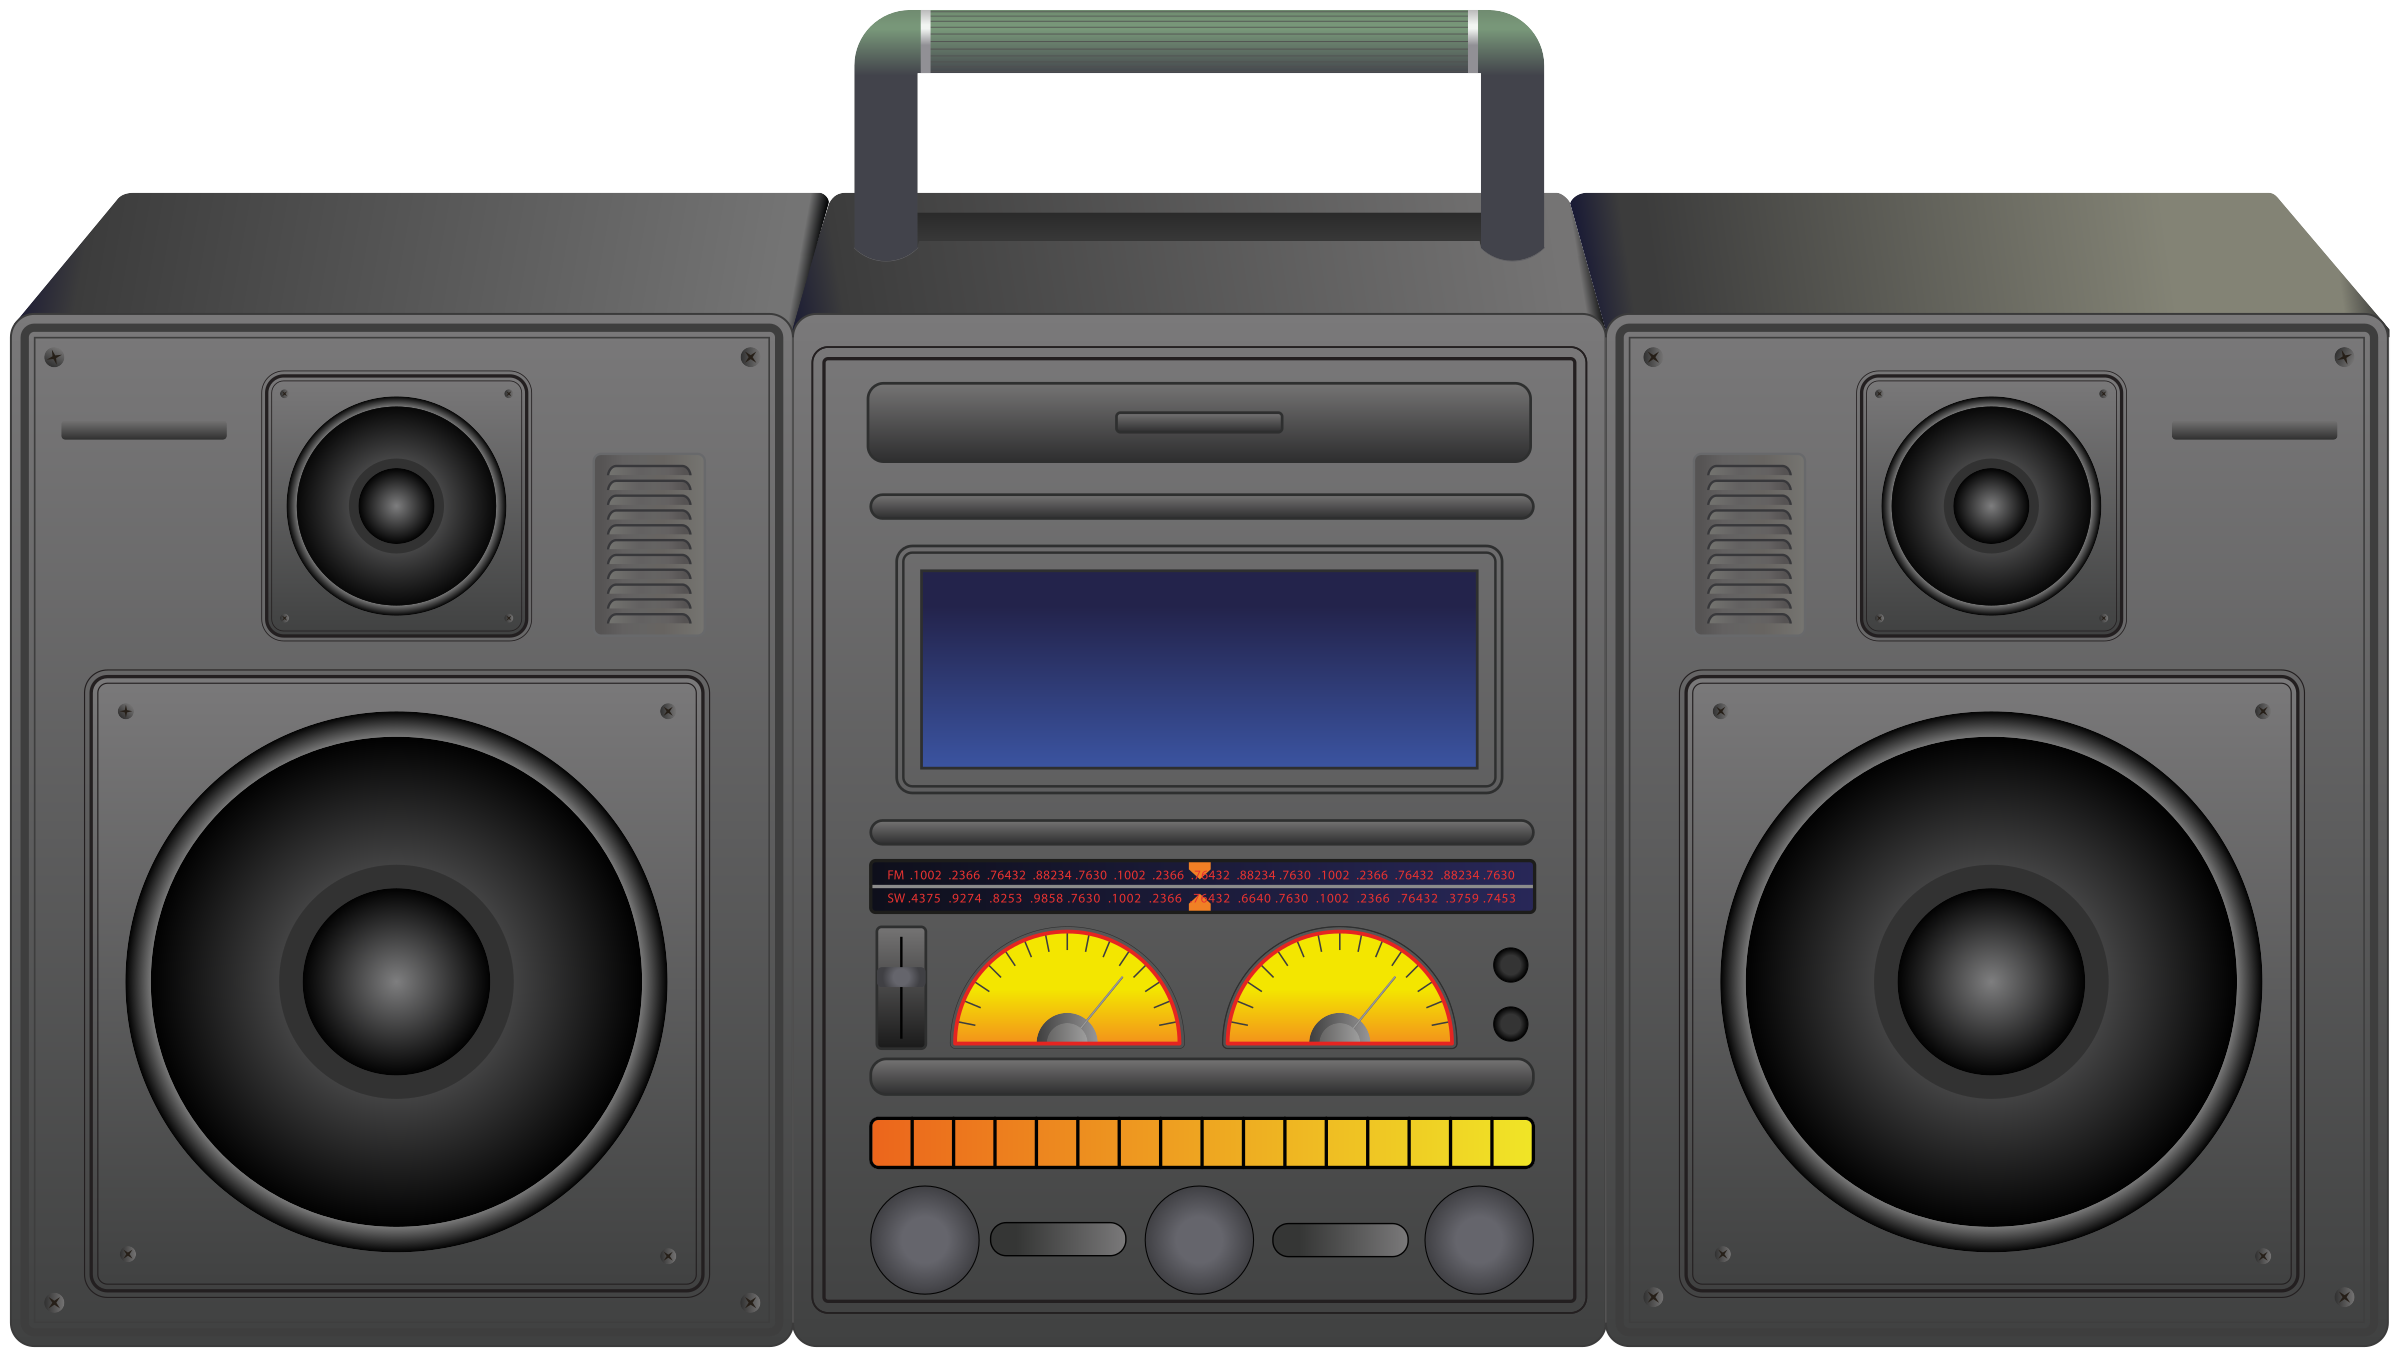 Boombox portable player icons. Electronics clipart music thing